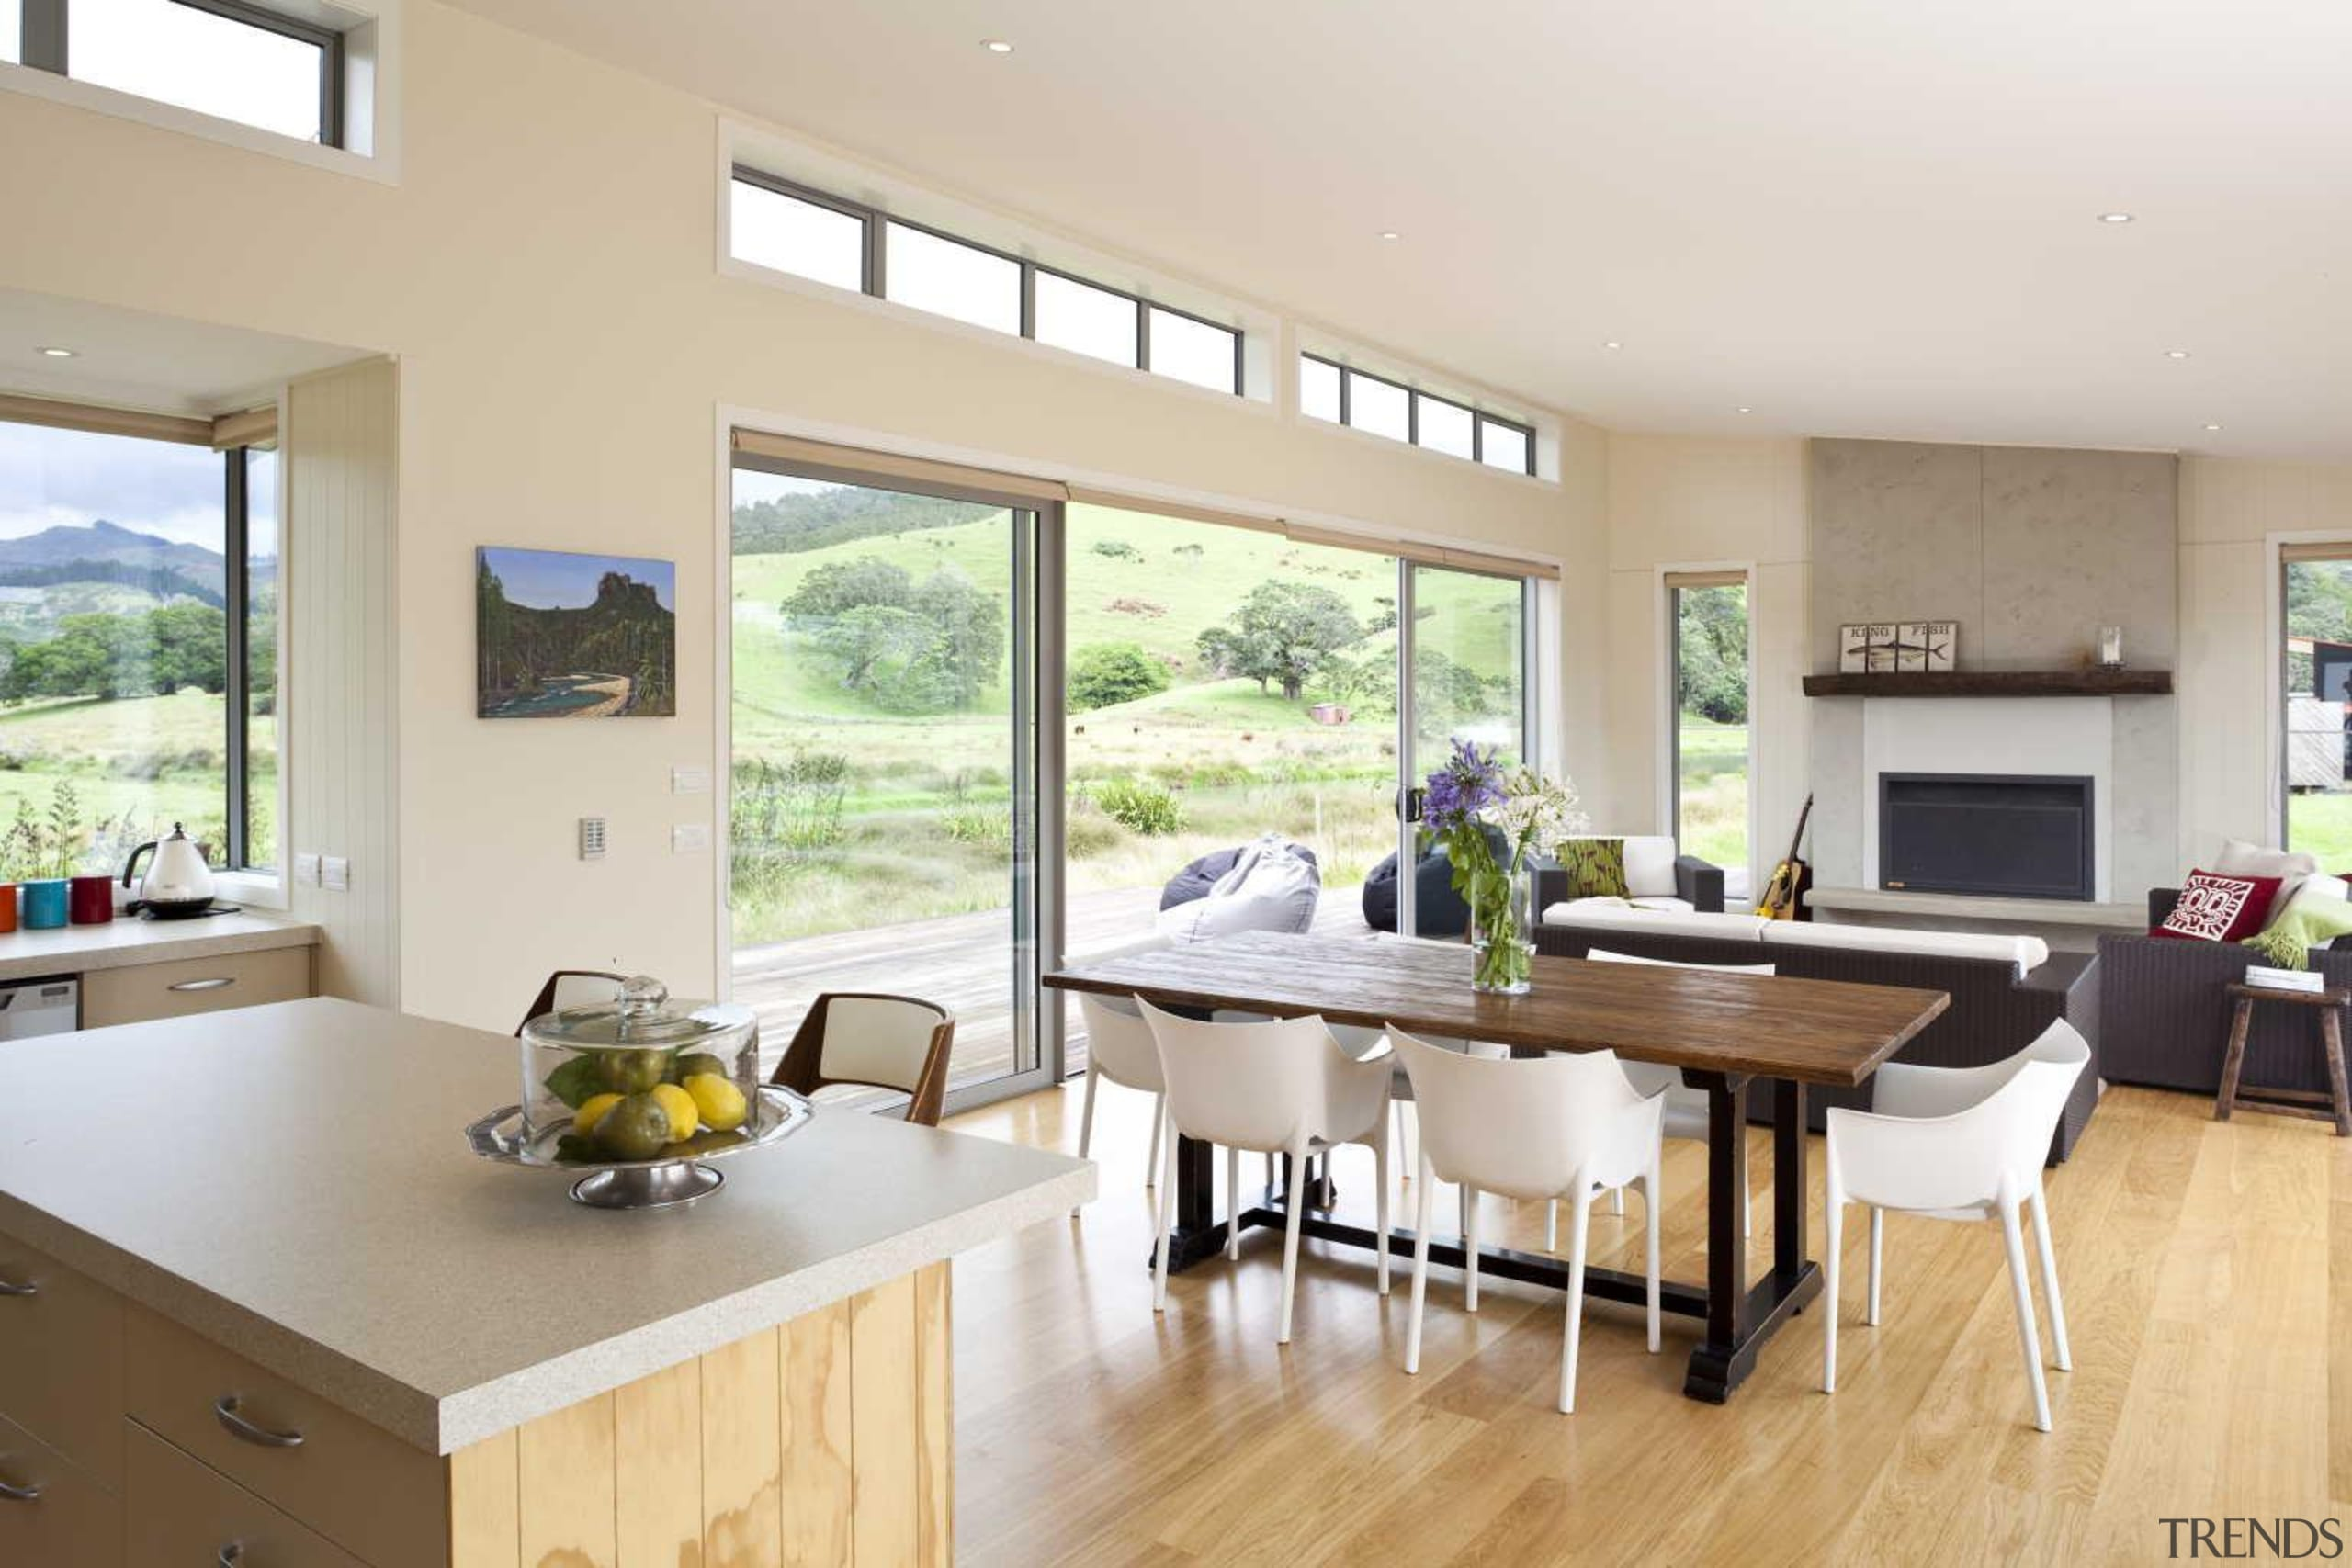 Timber flooring contemporary kitchen and dining area countertop, interior design, kitchen, real estate, window, gray